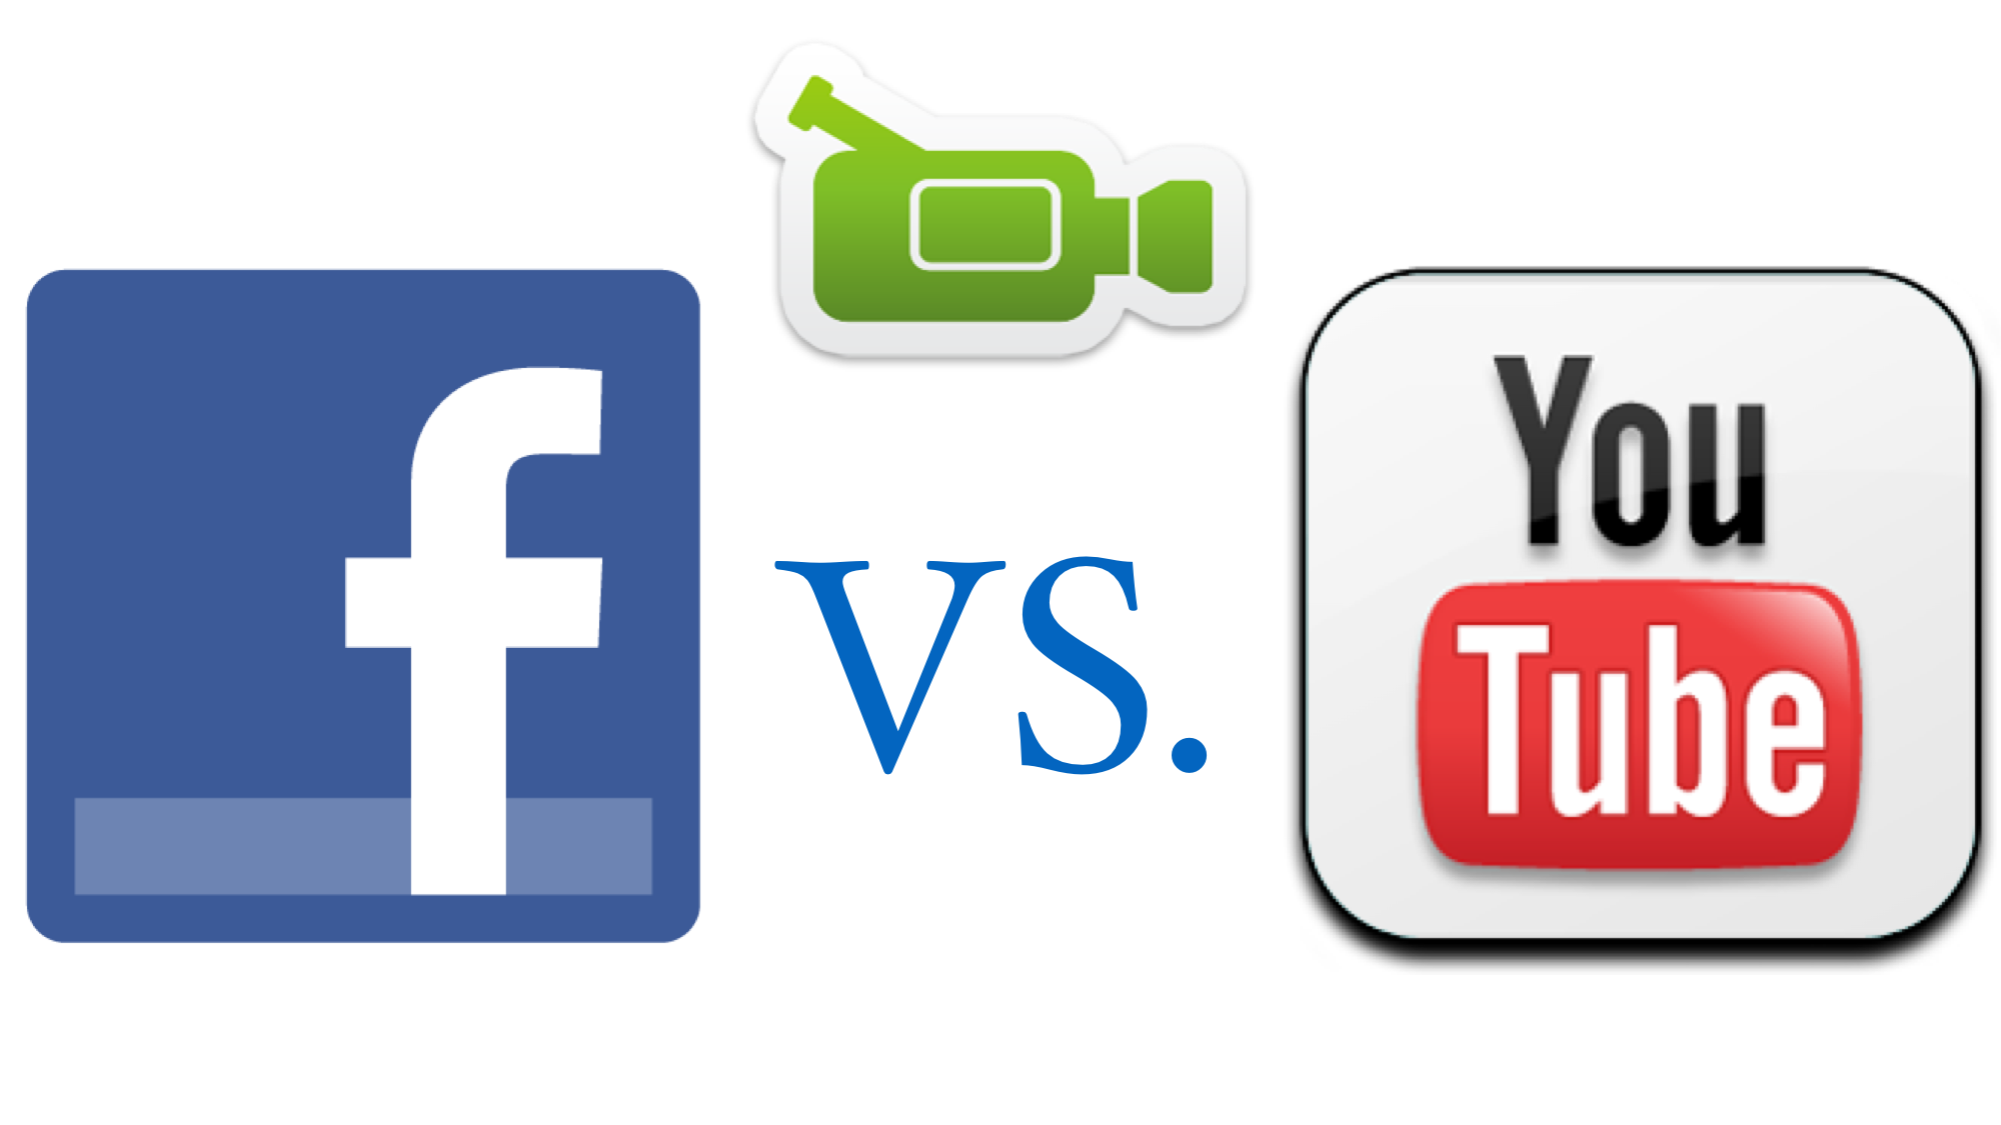 Facebook vs Youtube Graphic